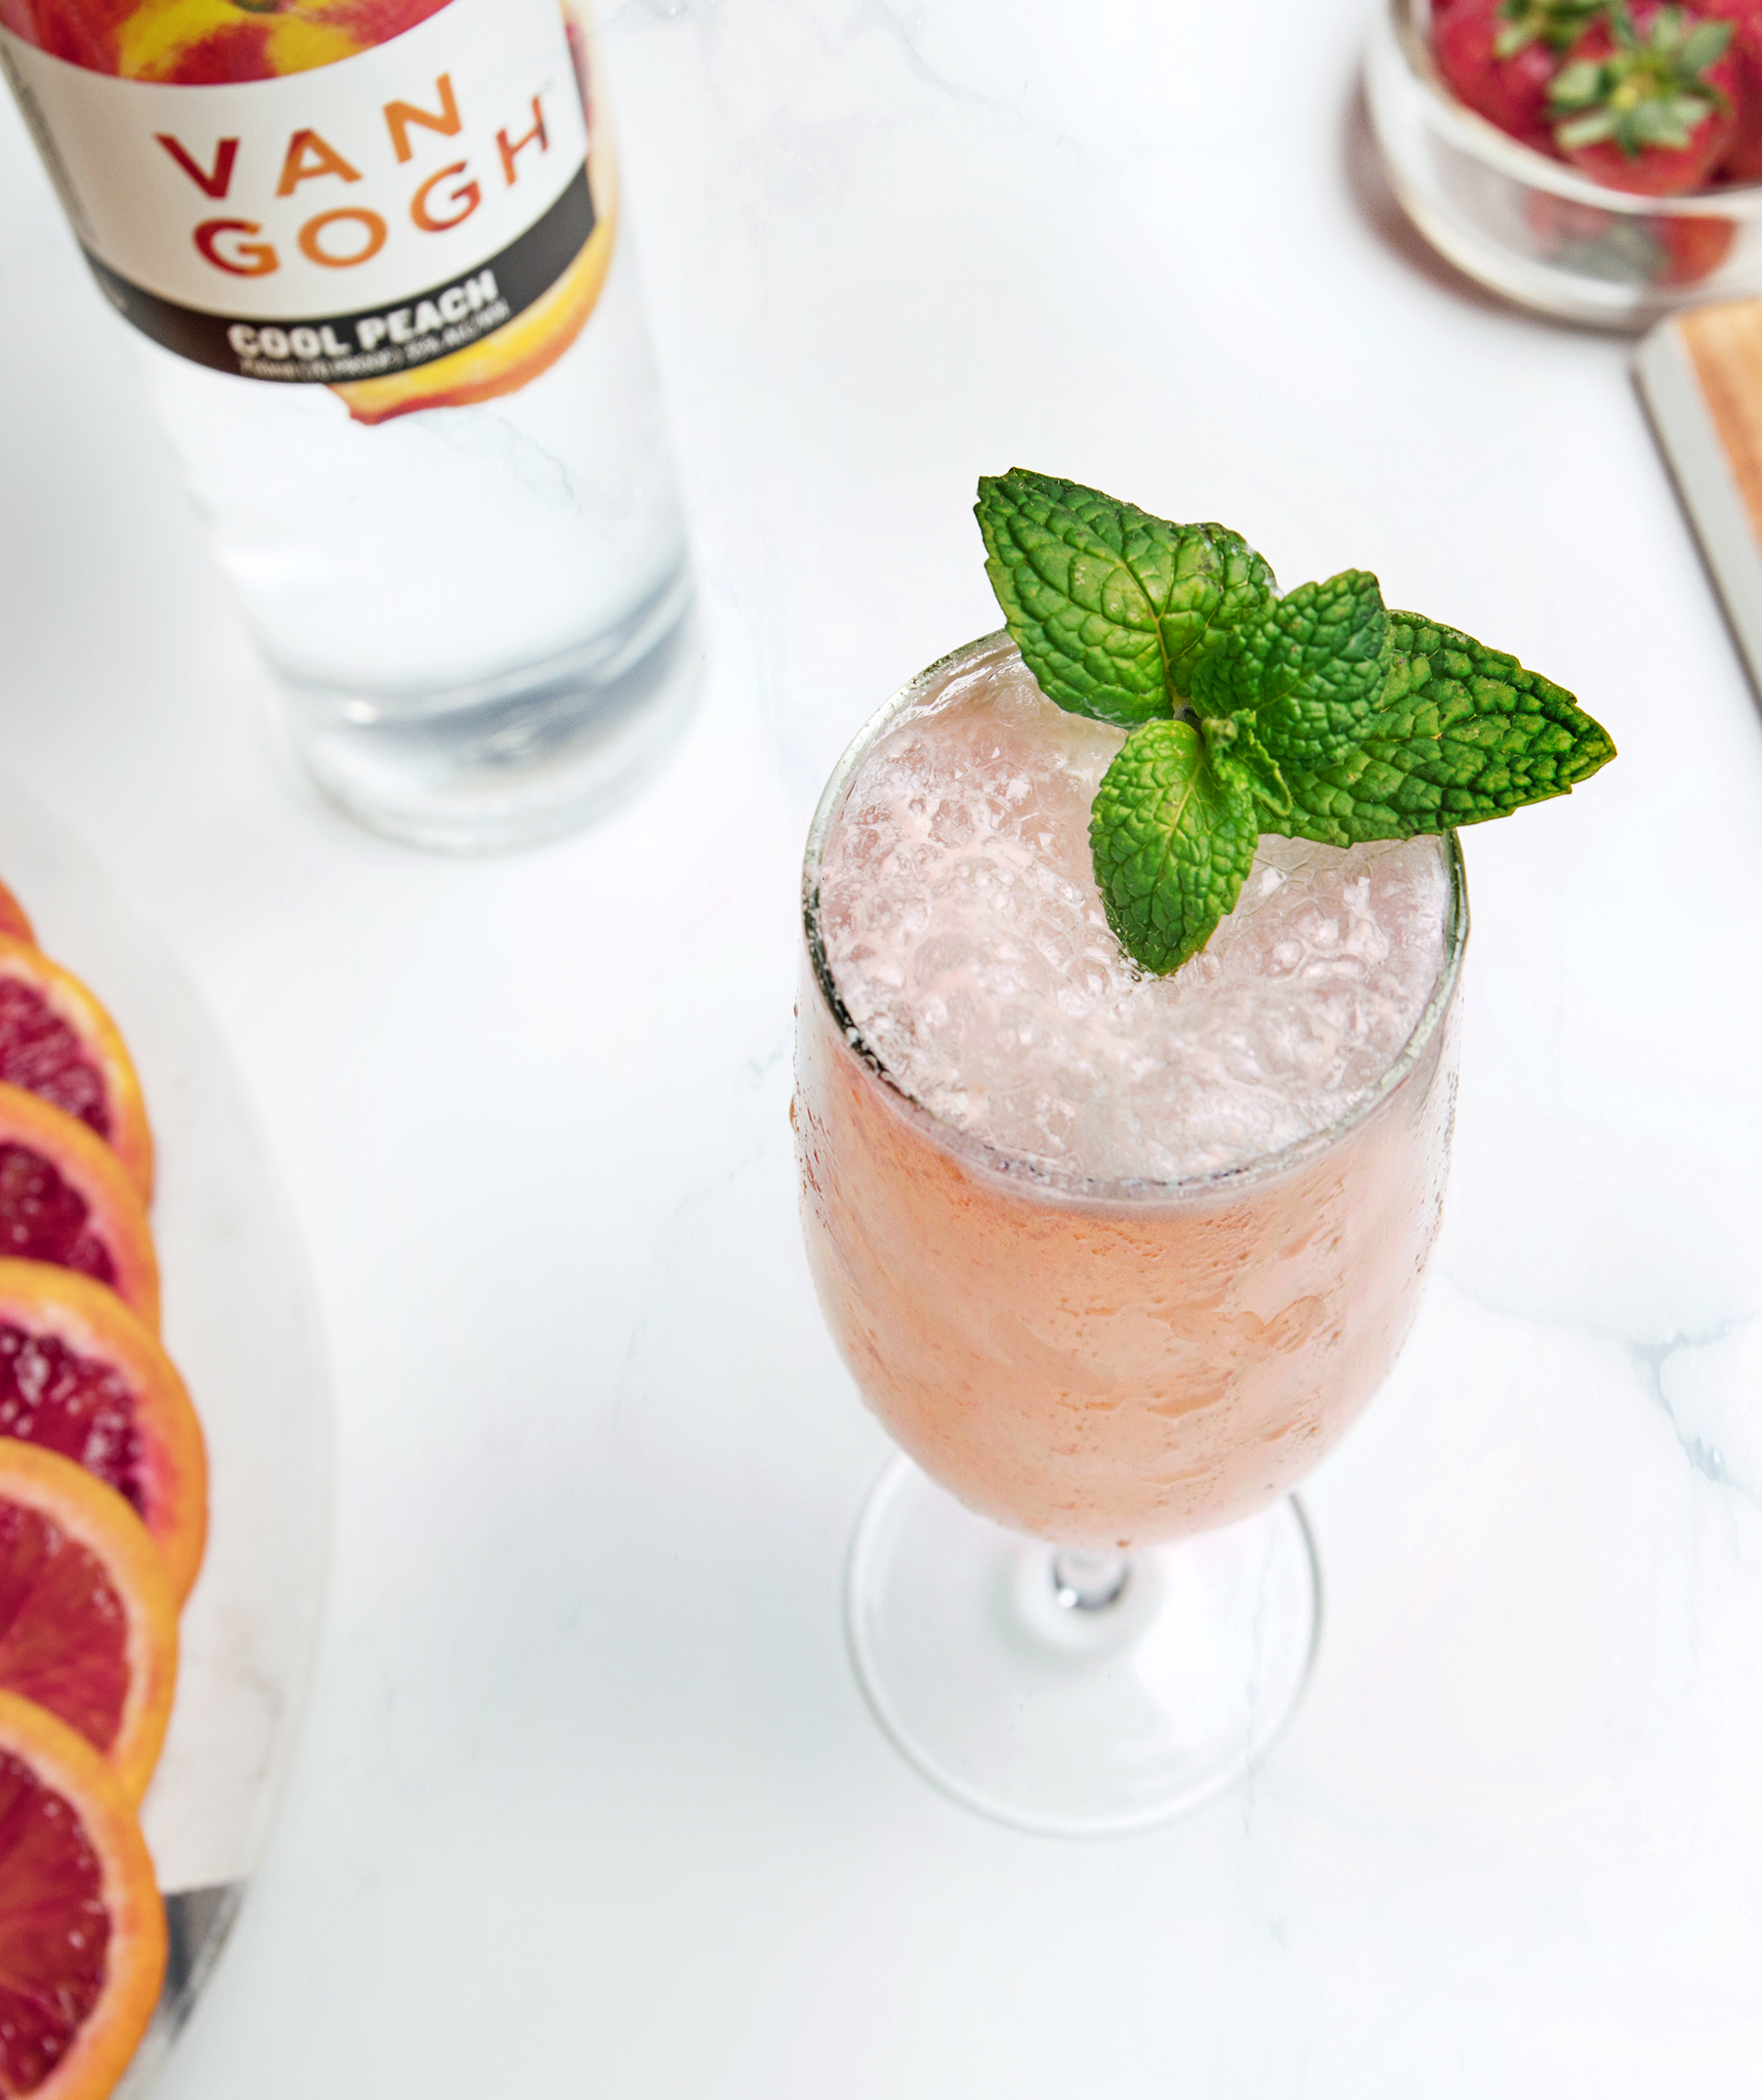 In a mixing glass, add ingredients with ice and gently fold together without over-stirring. Strain into a chilled flute. Garnish with a floating mint leaf and peach slice.